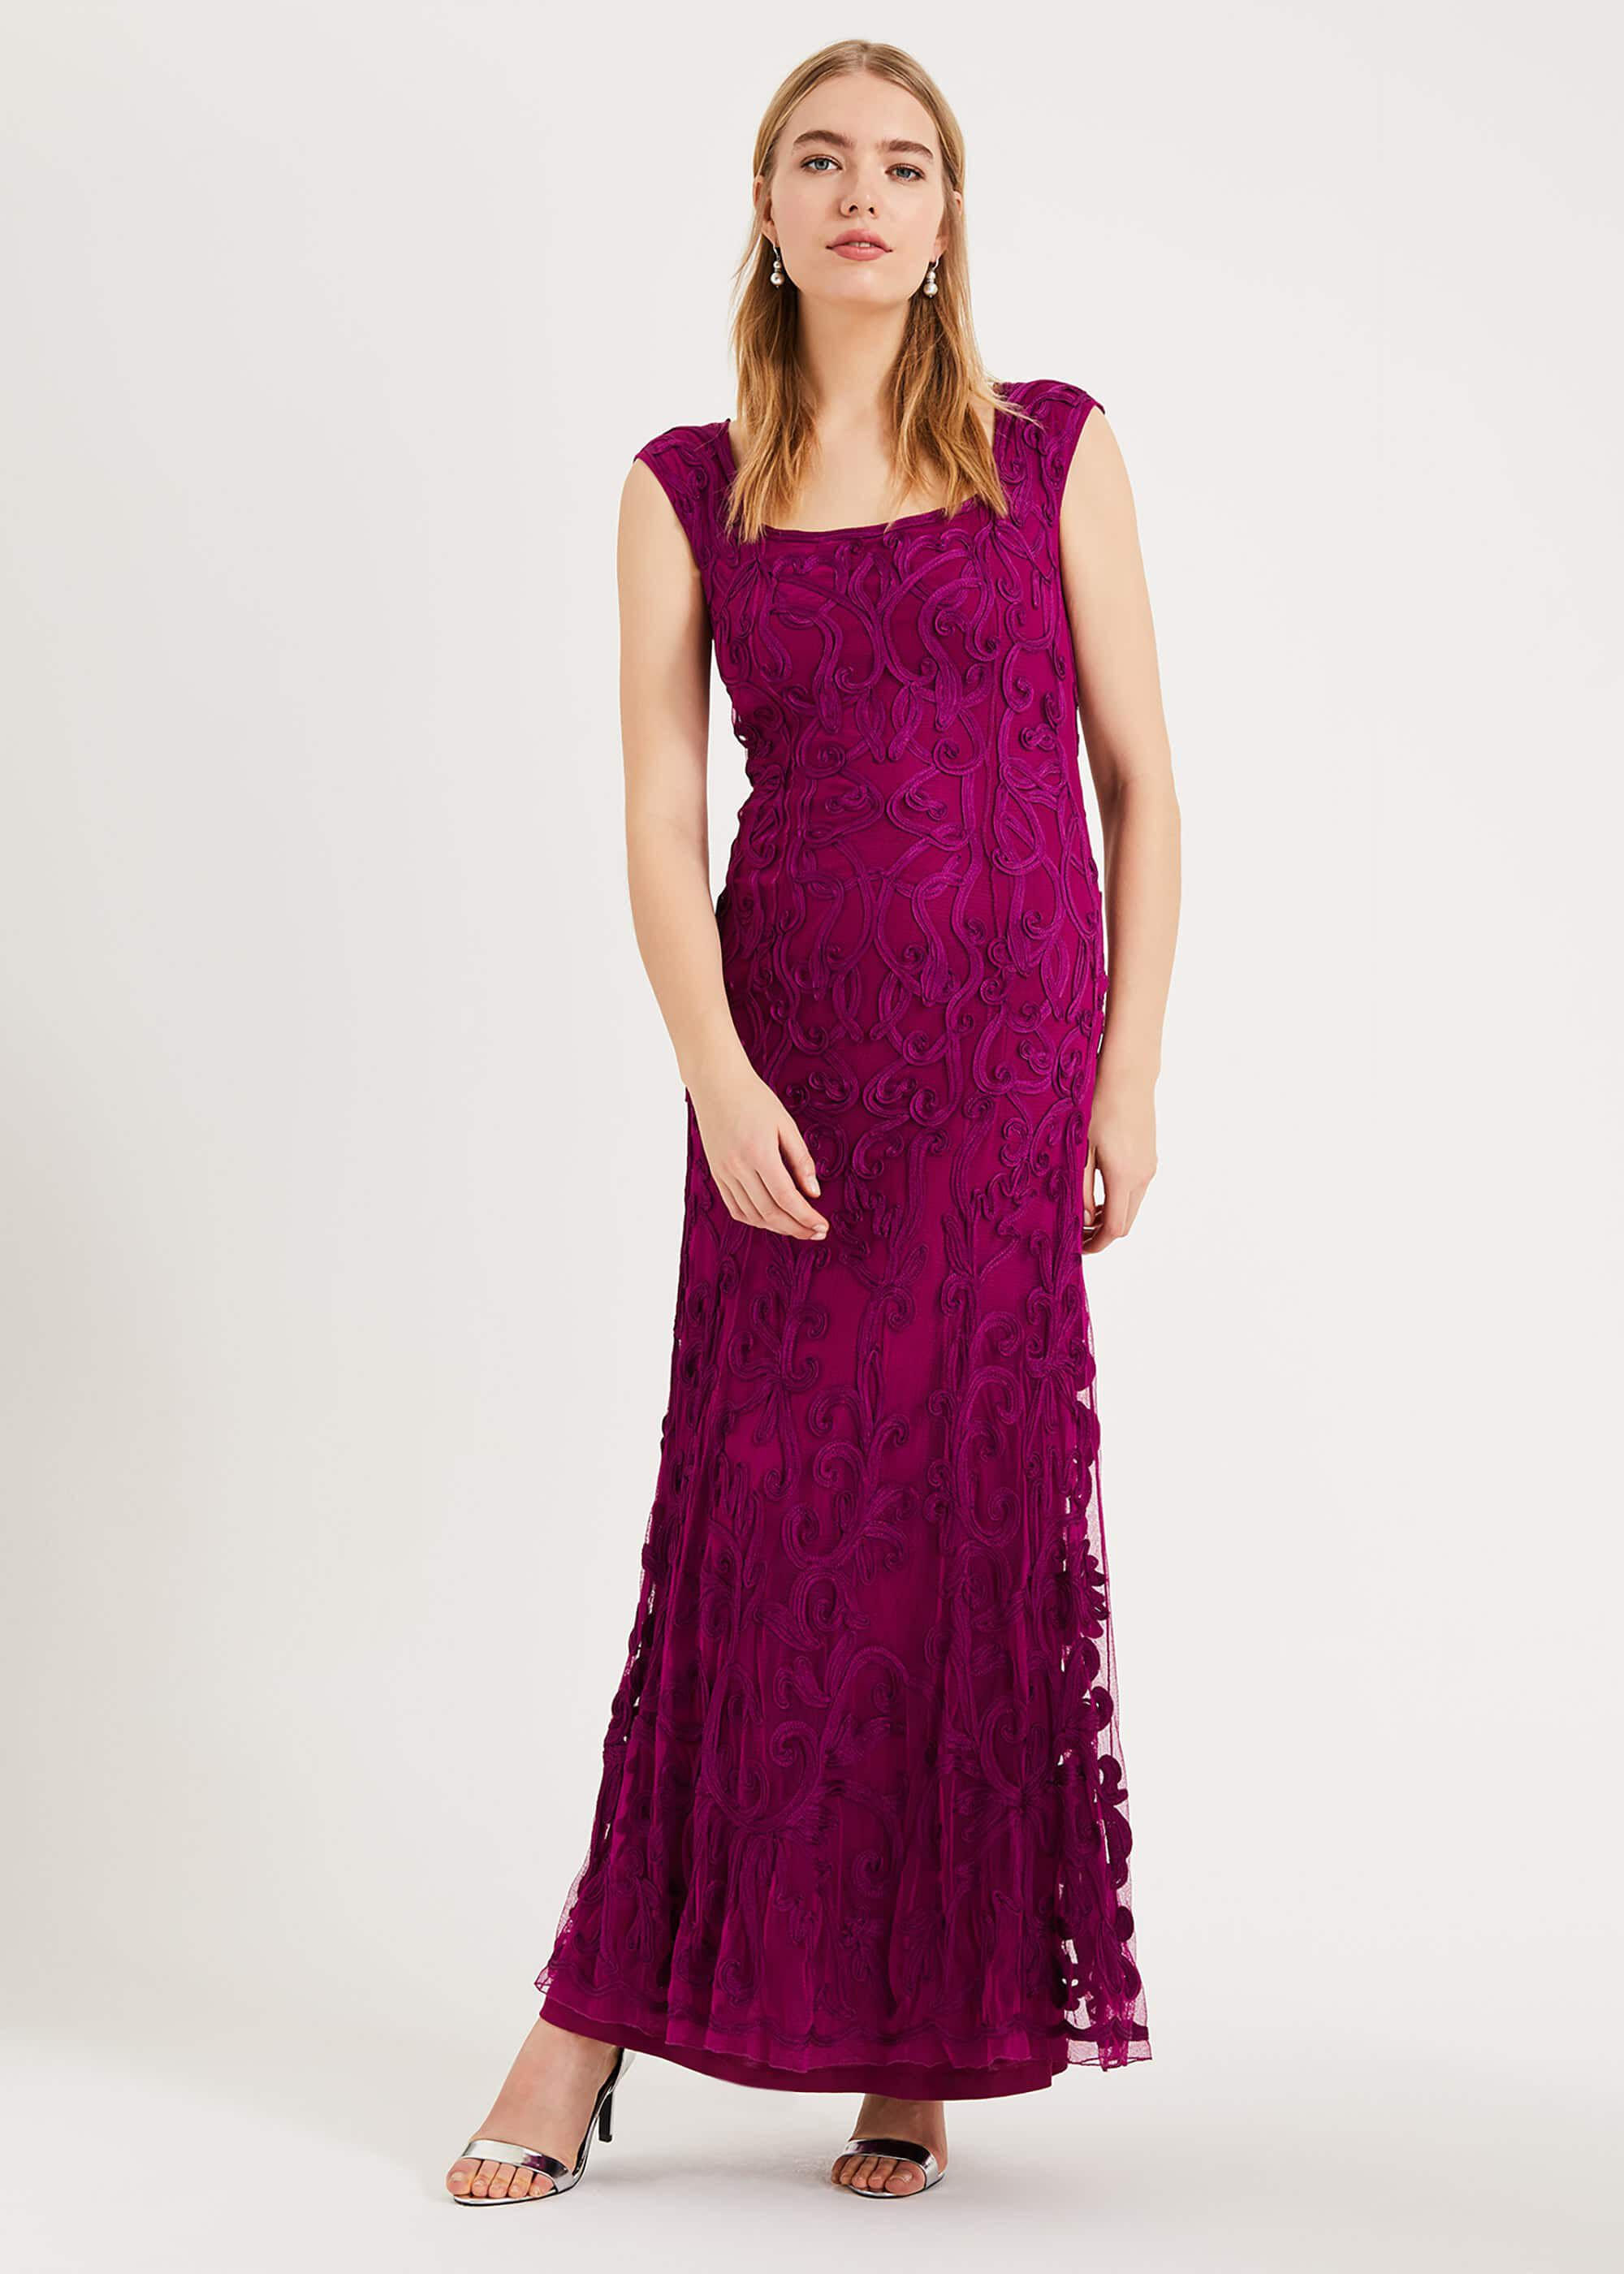 Phase Eight Abbie Tapework Lace Maxi Dress, Purple, Maxi